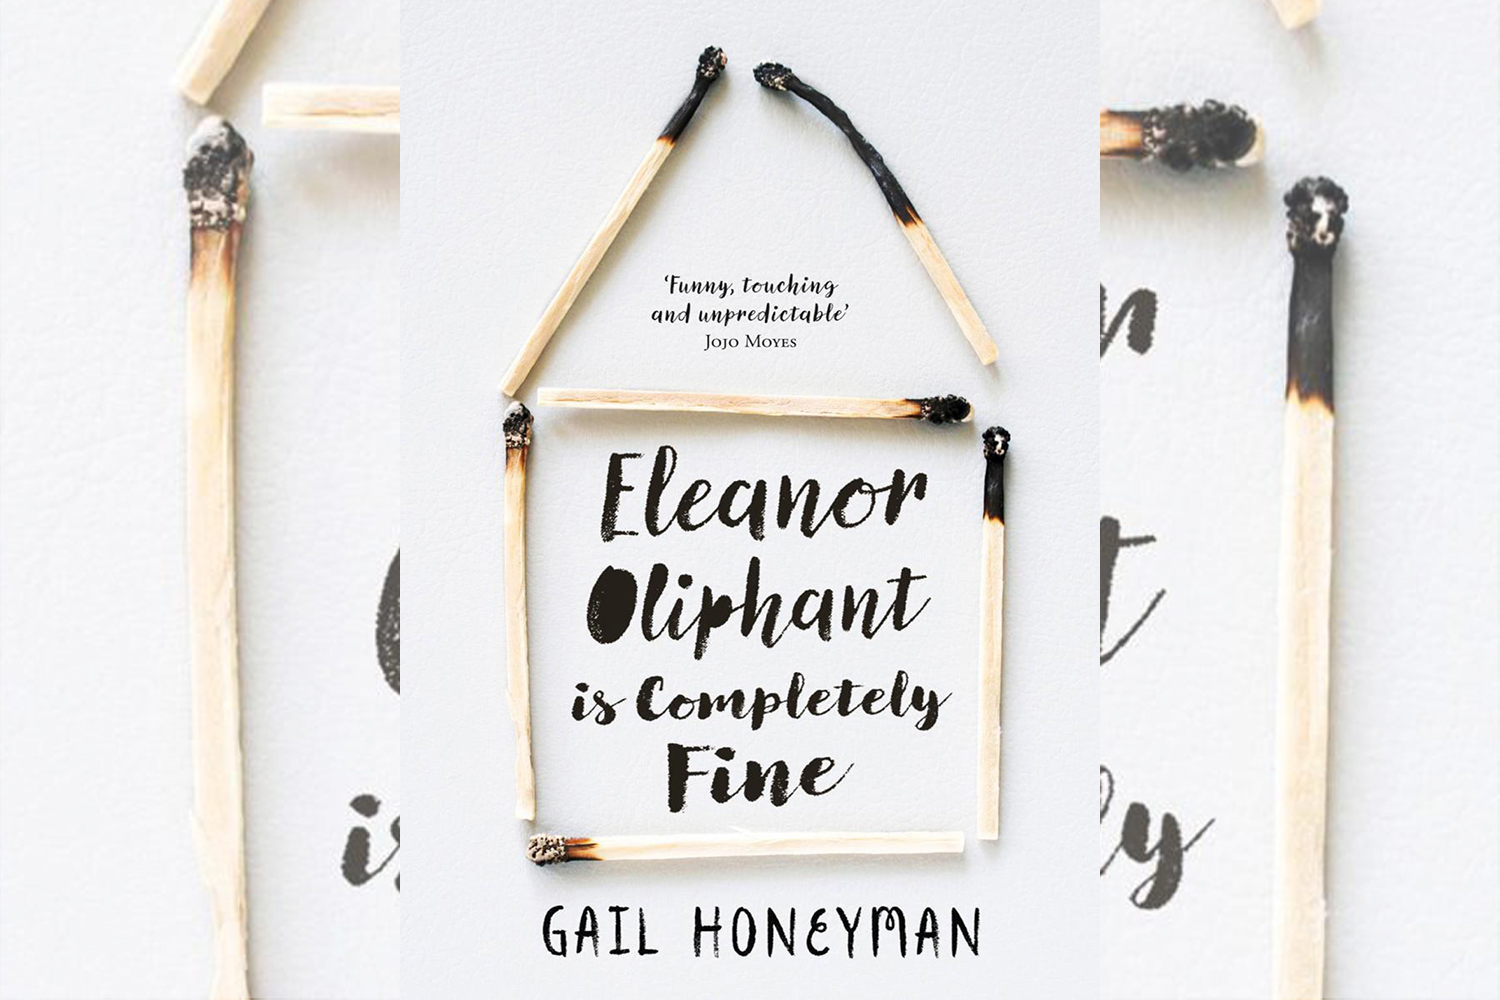 Eleanor Oliphant Is Completely Fine book